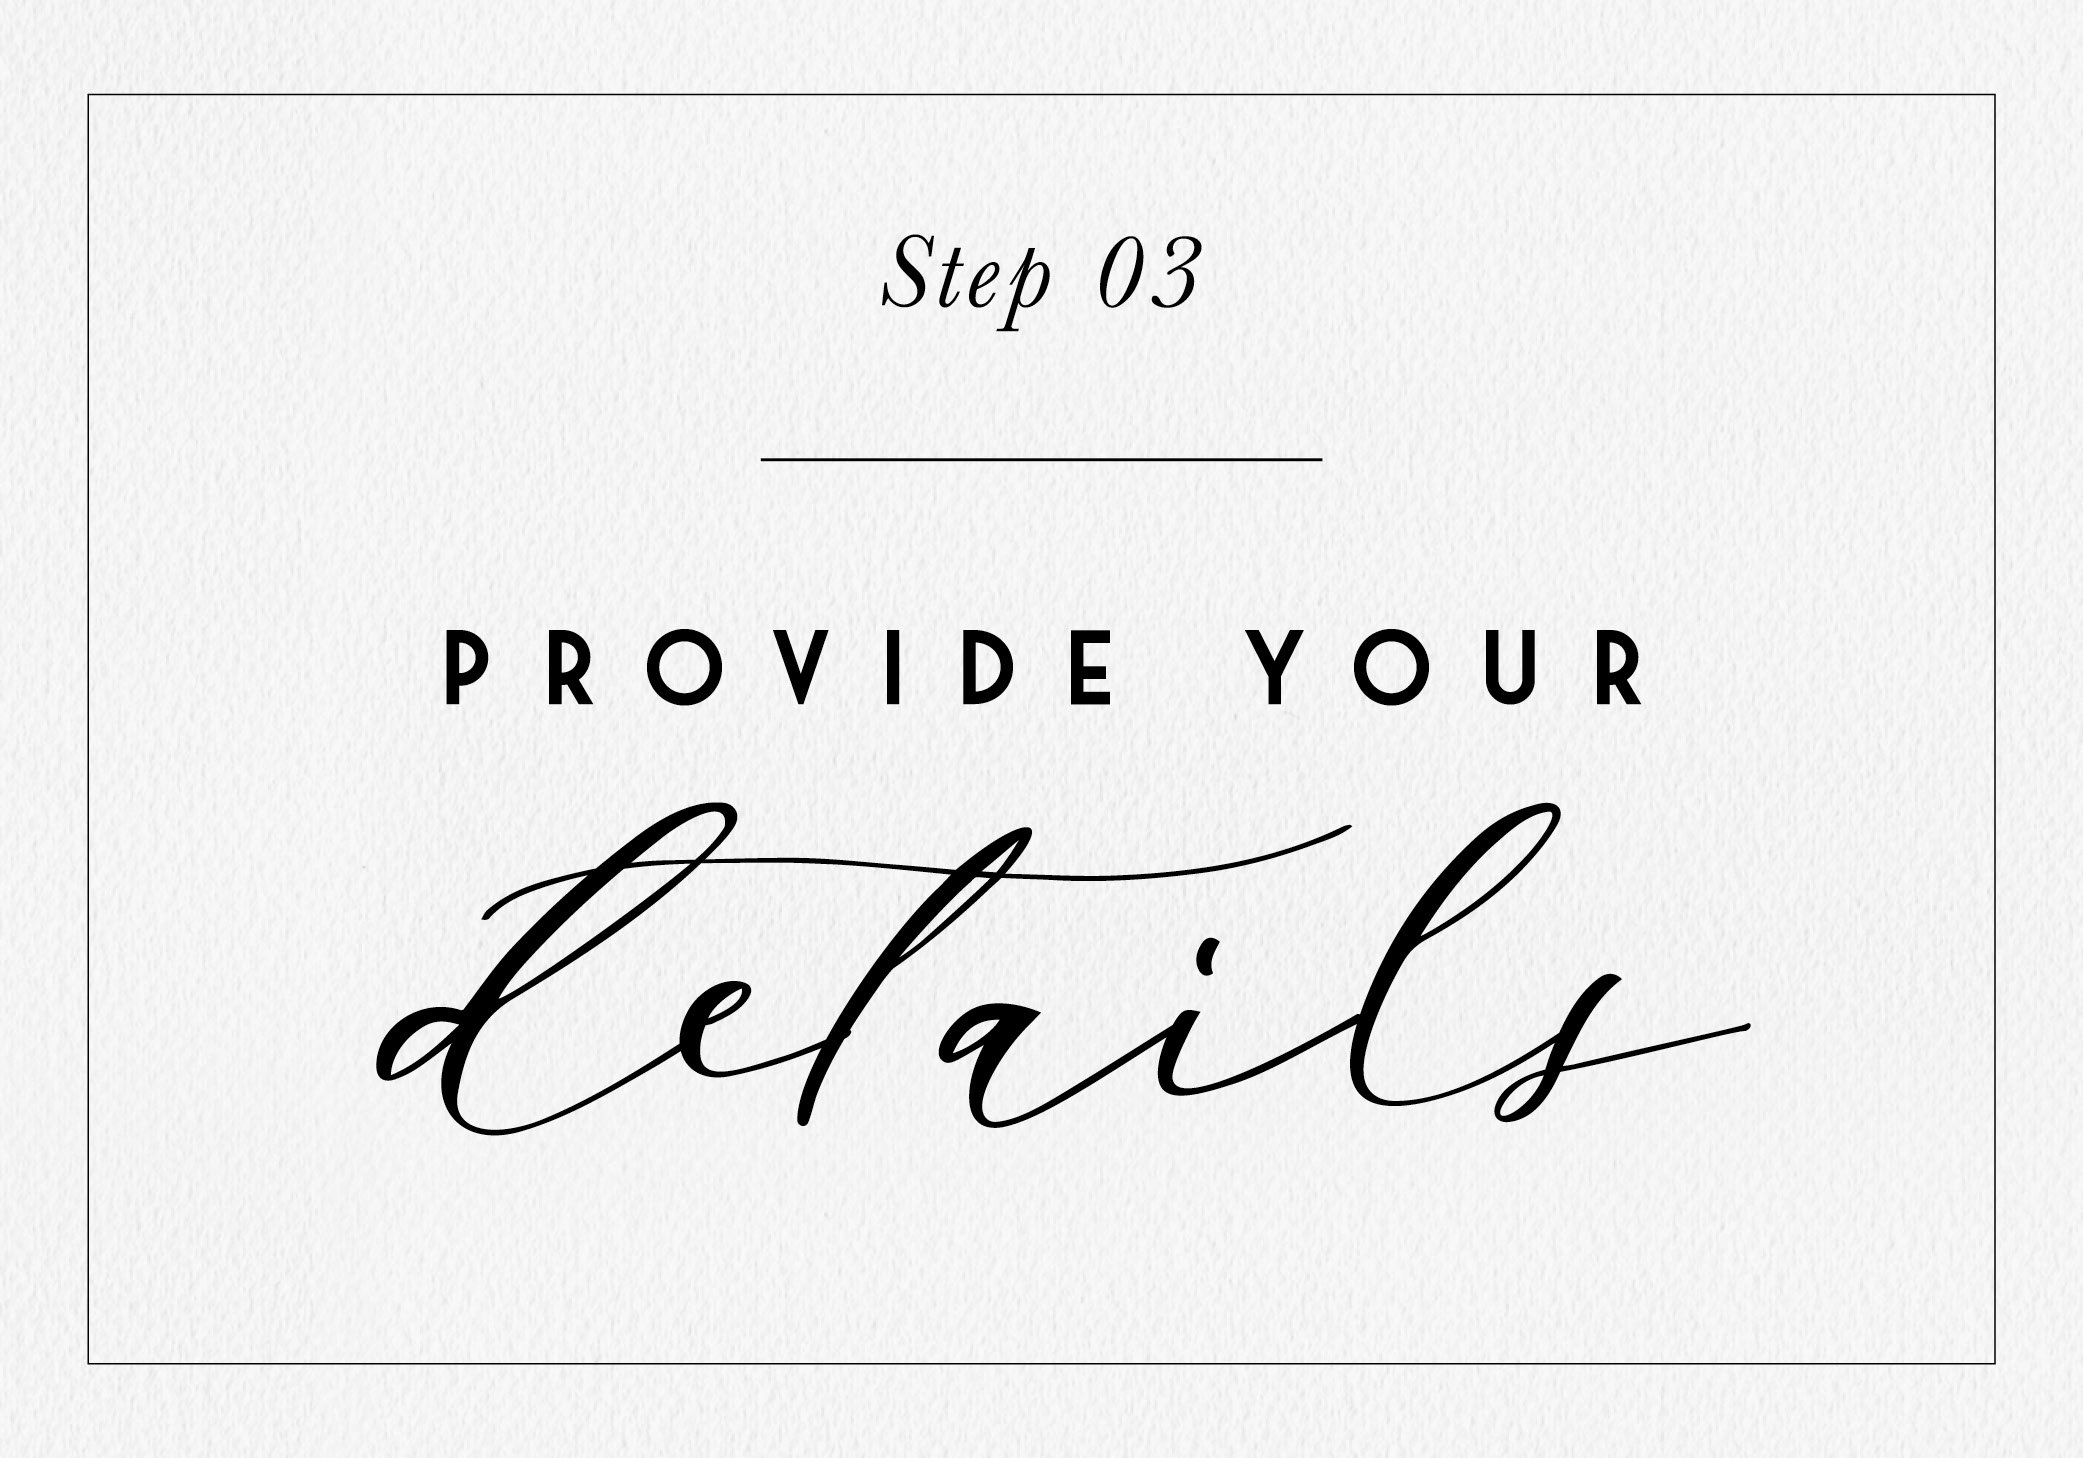 - 3. Provide your information and details for your wedding set so that I can create a proof. You will receive a first proof within one week.